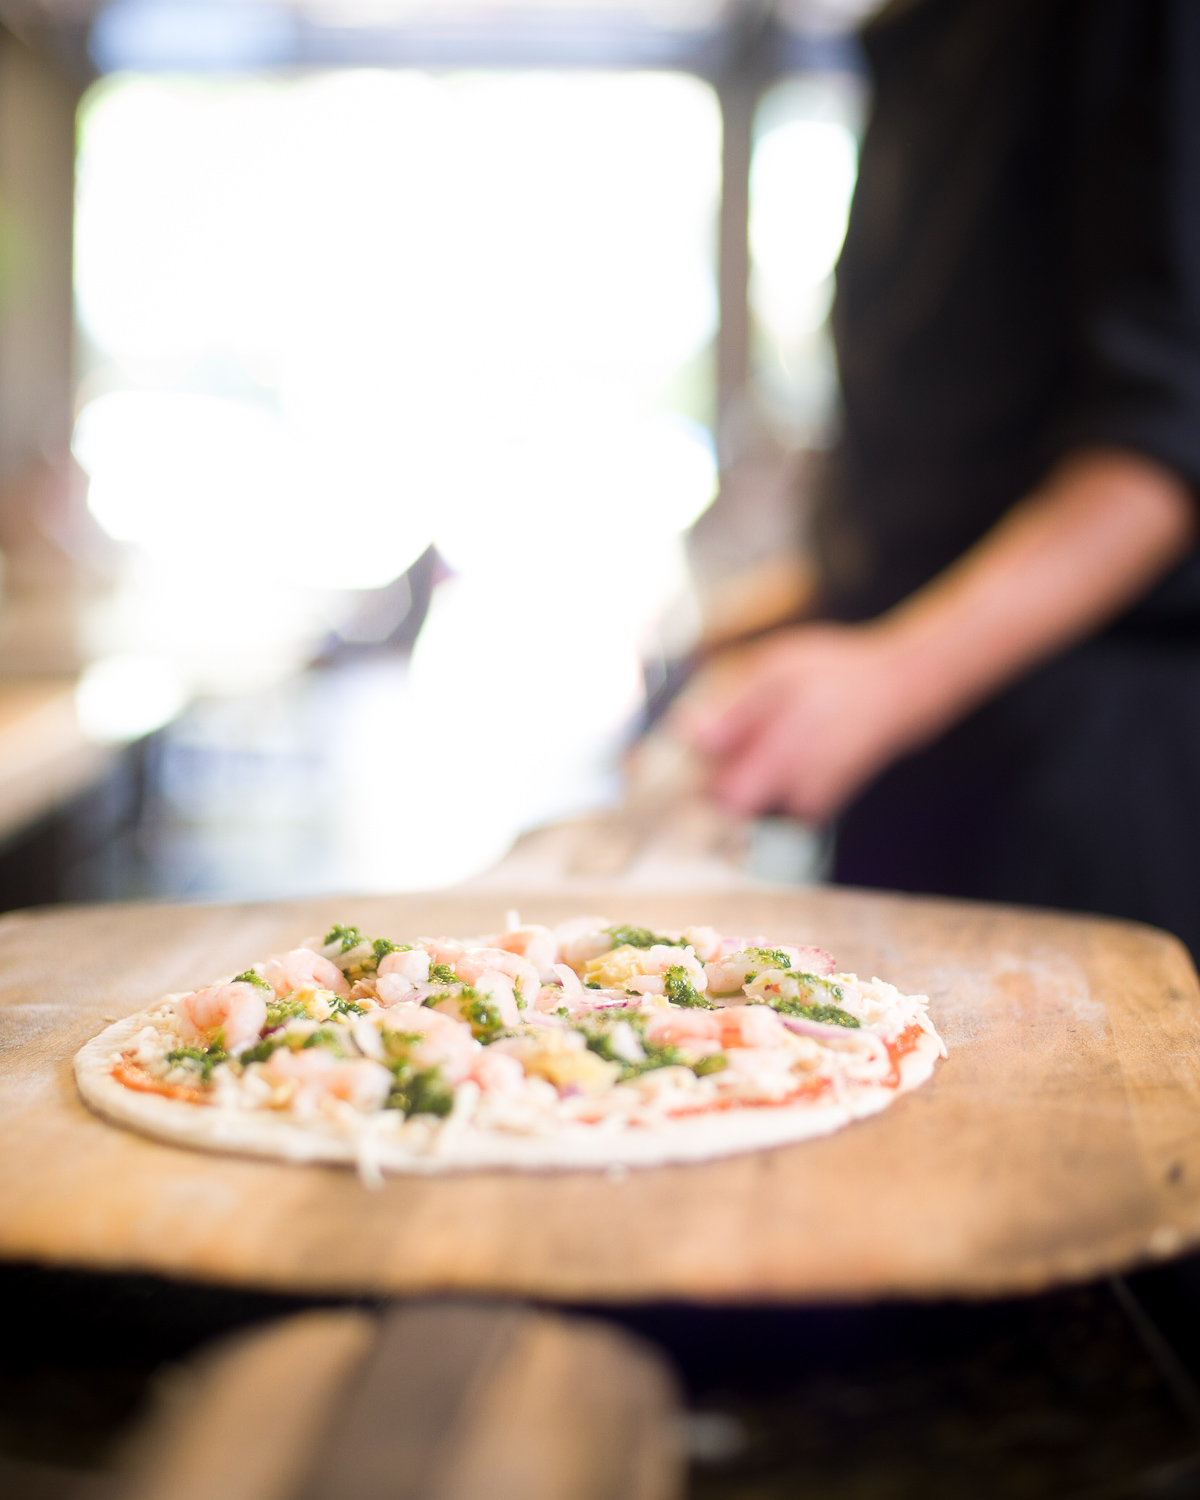 Chef holding uncooked organic shrimp pizza food photograph